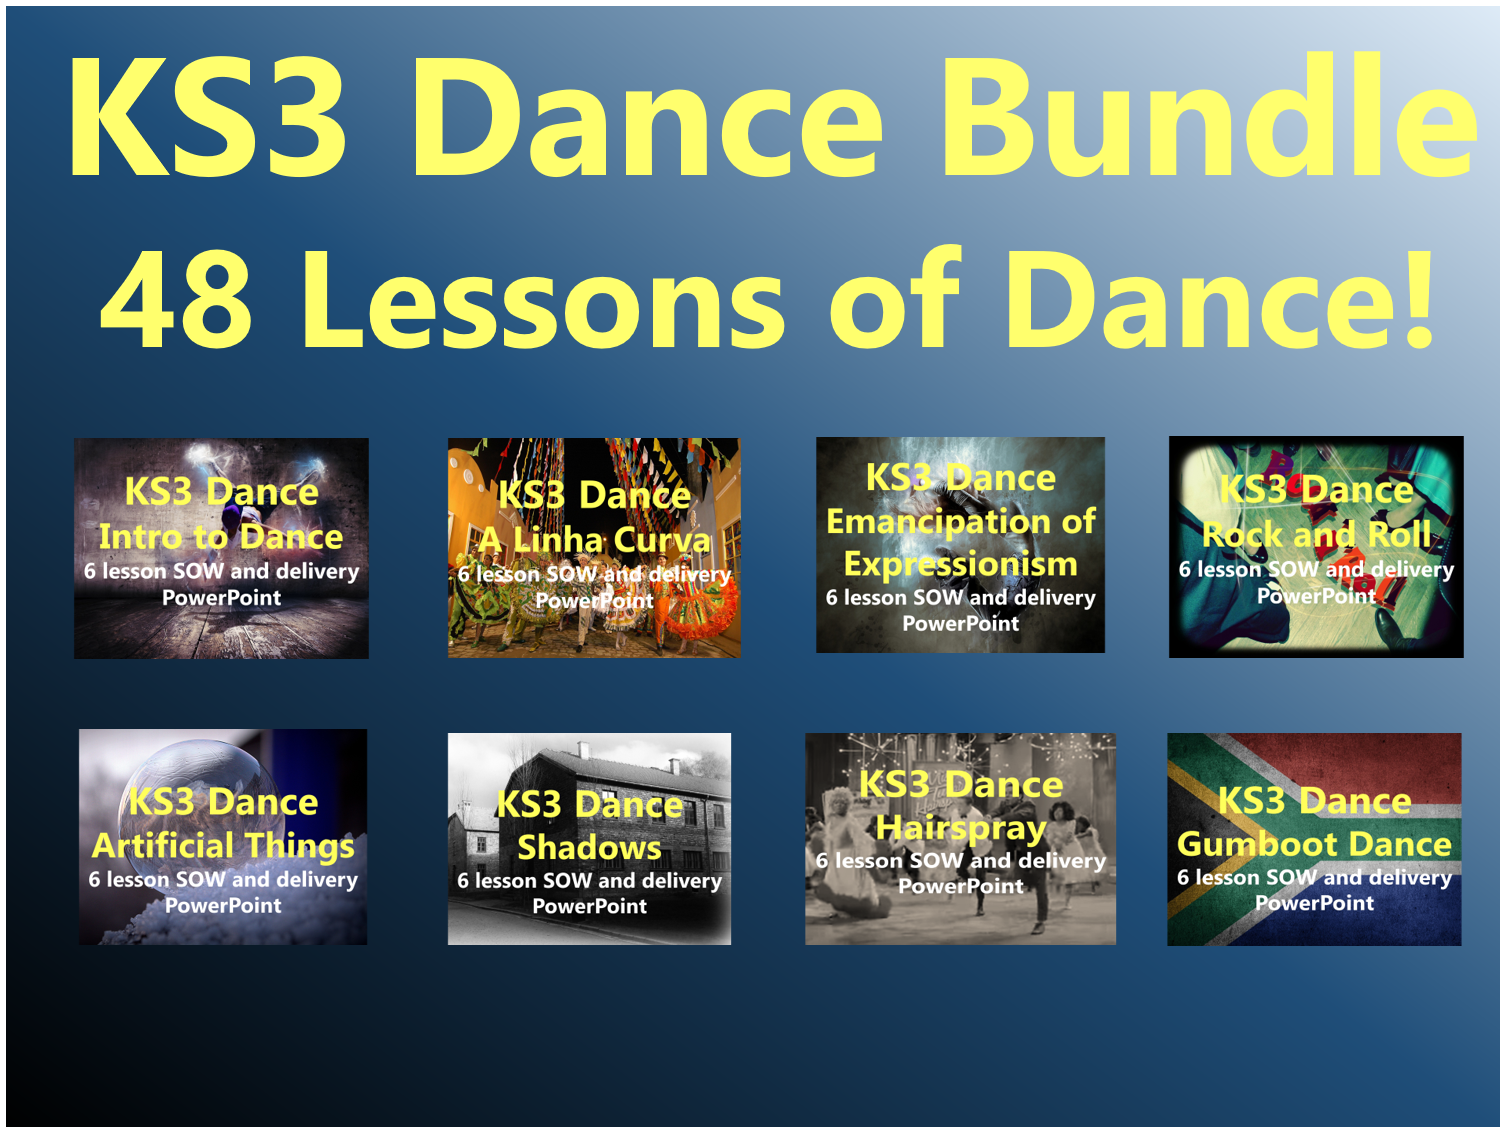 KS3 Dance Bundle - 48 Lessons of Dance!